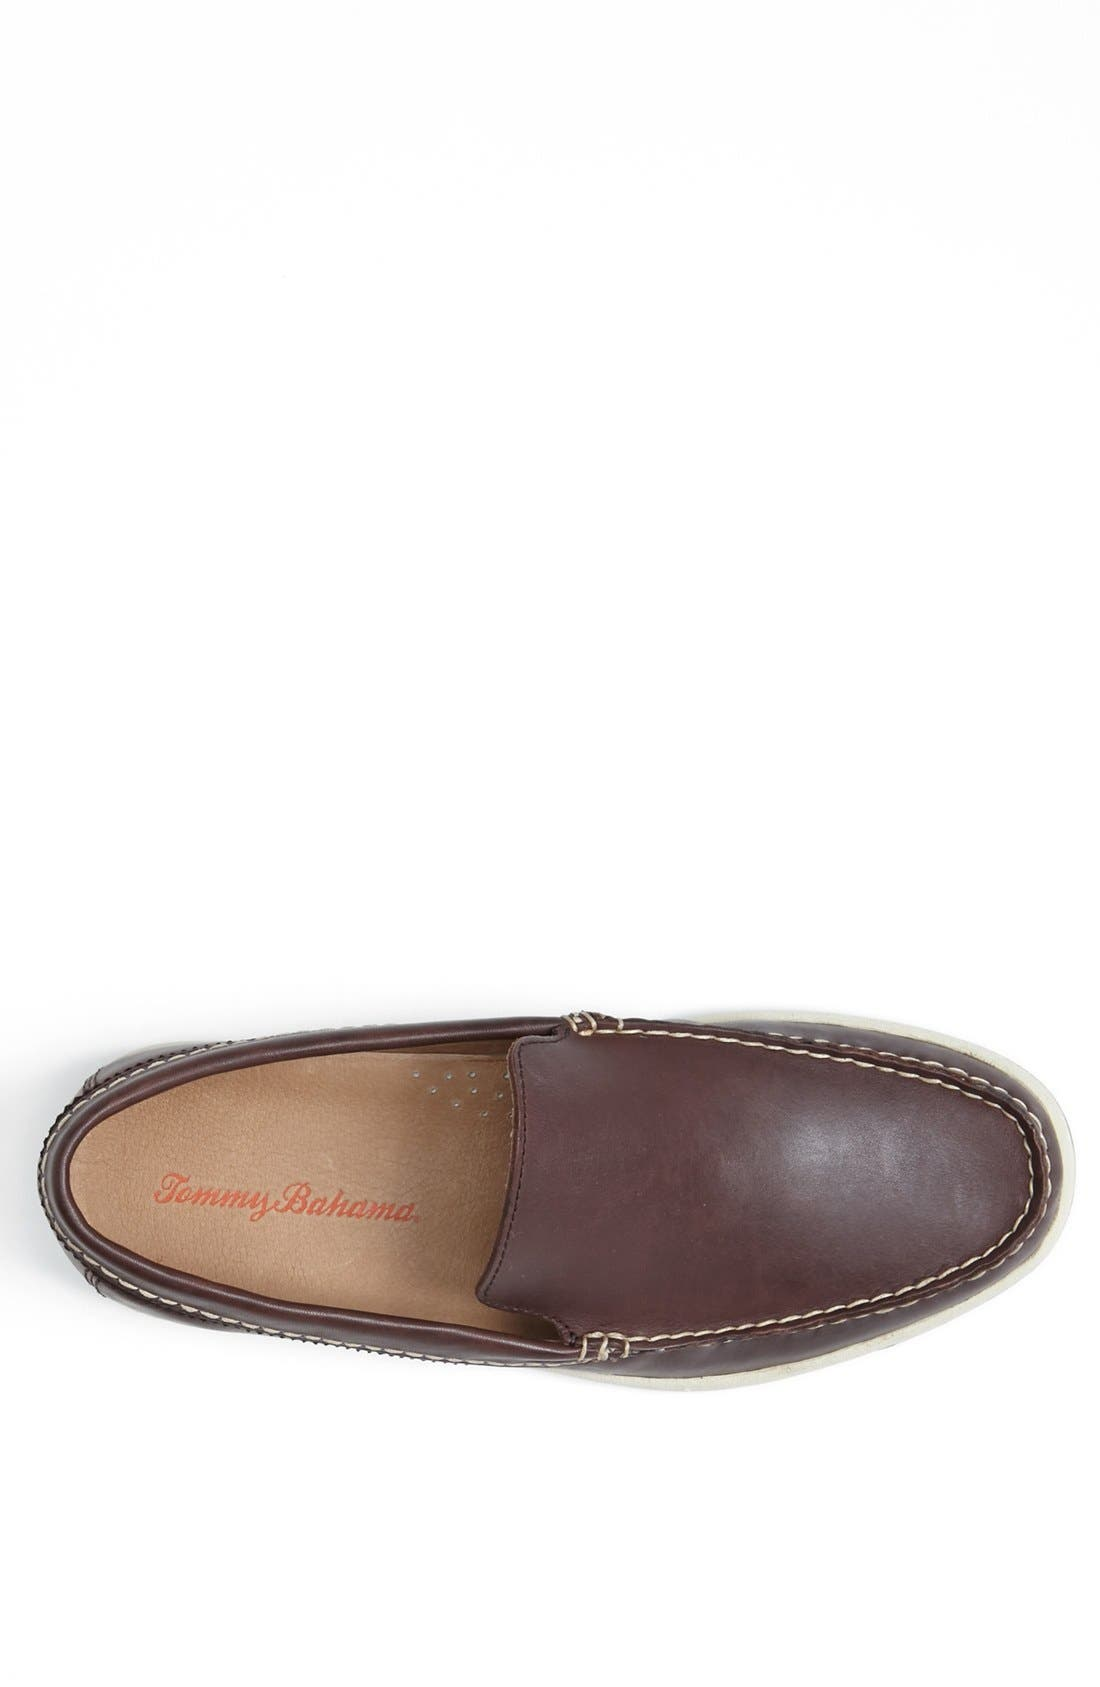 Alternate Image 3  - Tommy Bahama 'Alexander' Slip-On